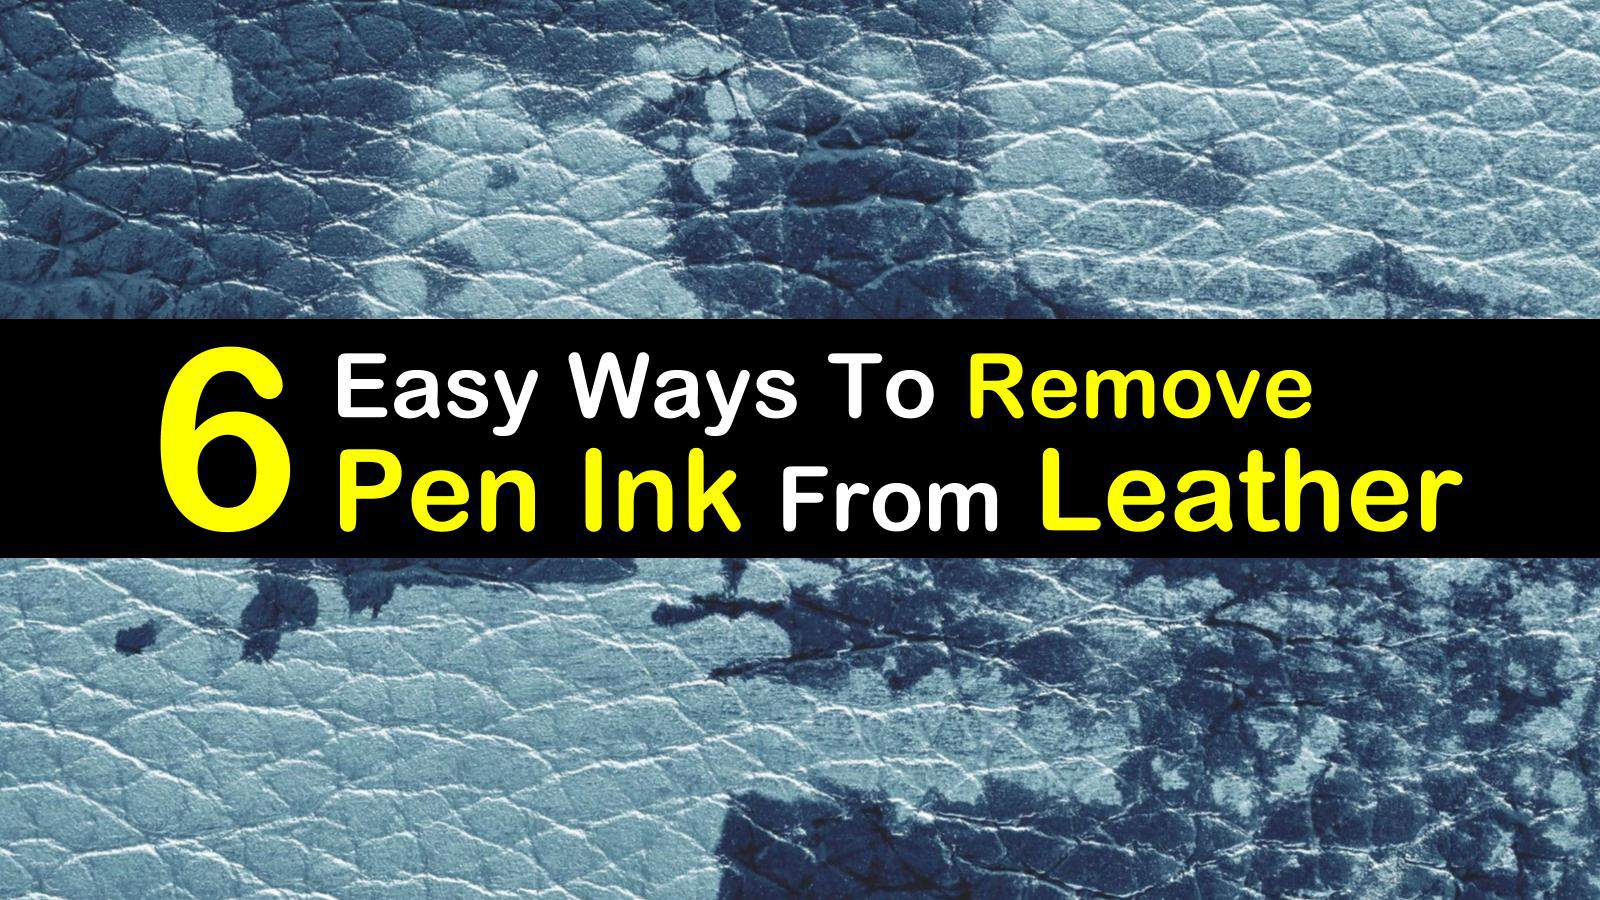 6 Easy Ways To Remove Pen Ink From Leather